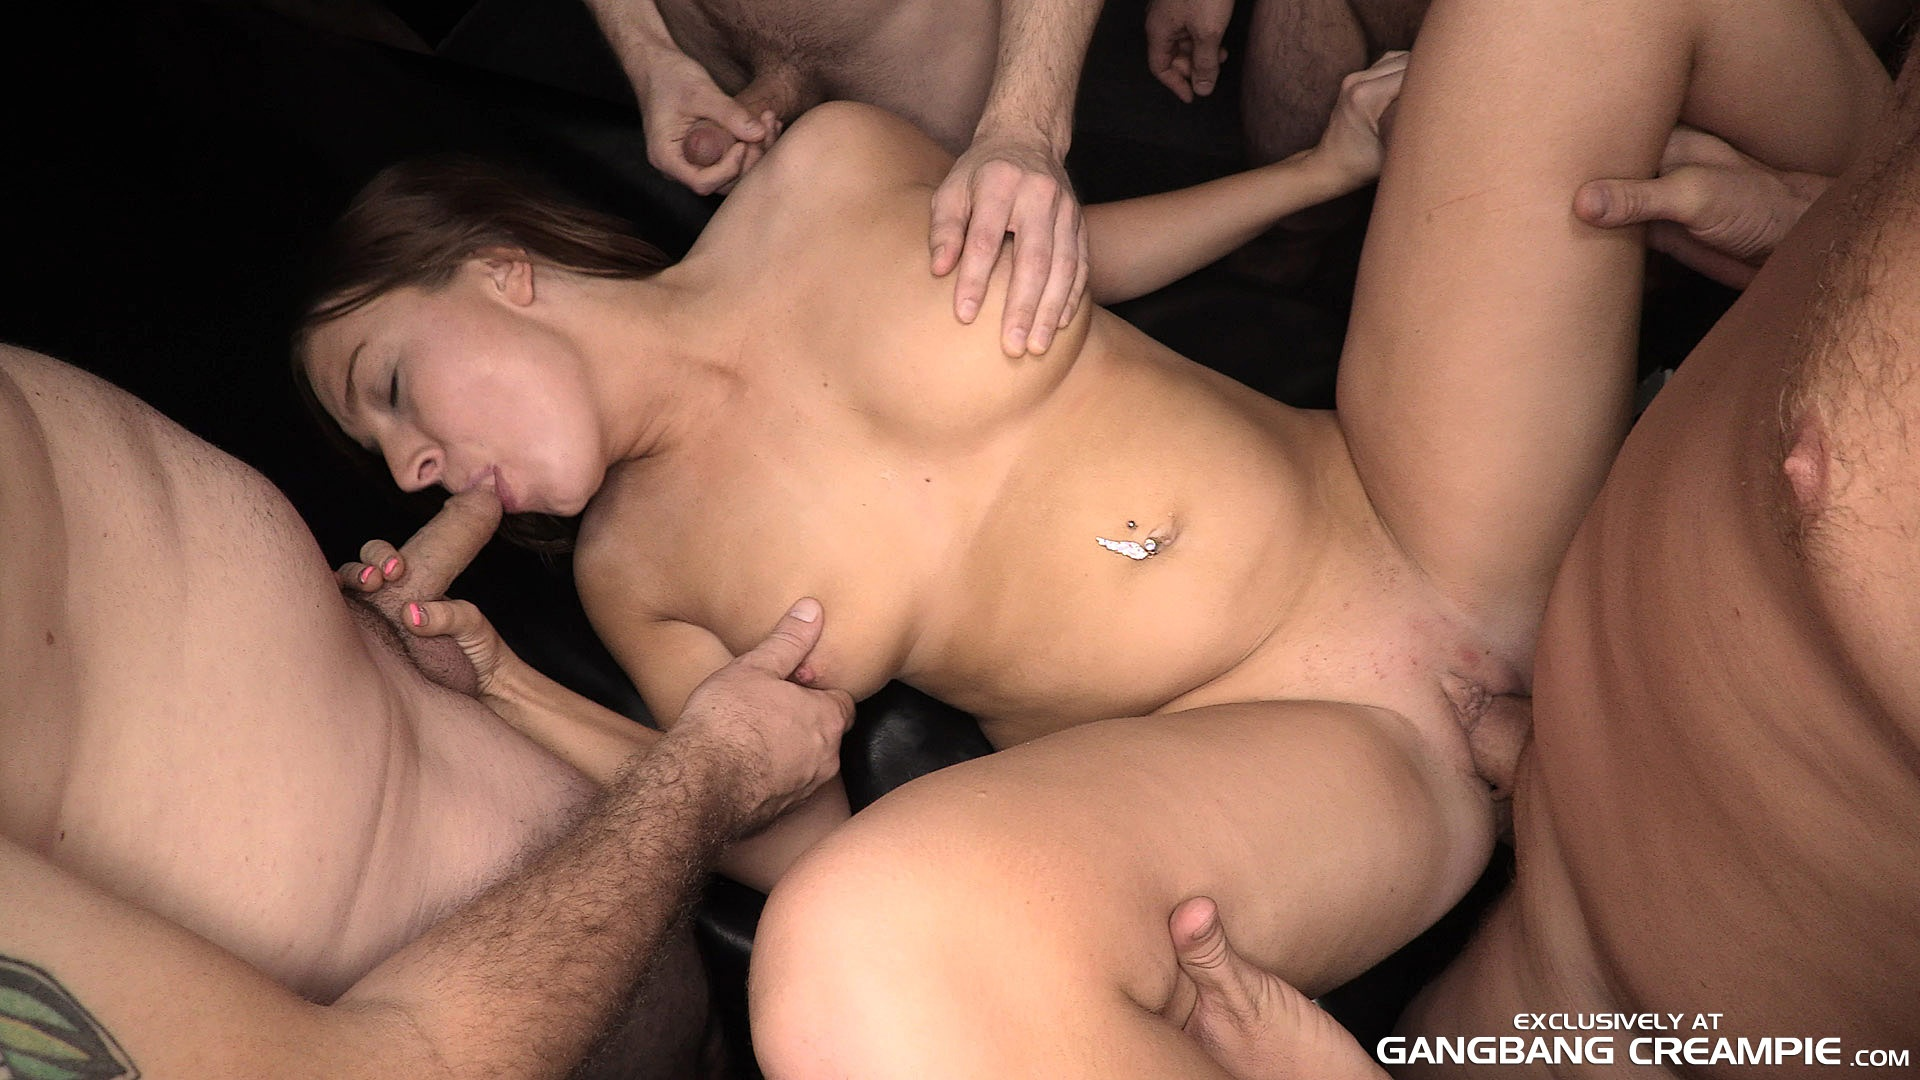 Like her! nasty amateur gangbang Your dick